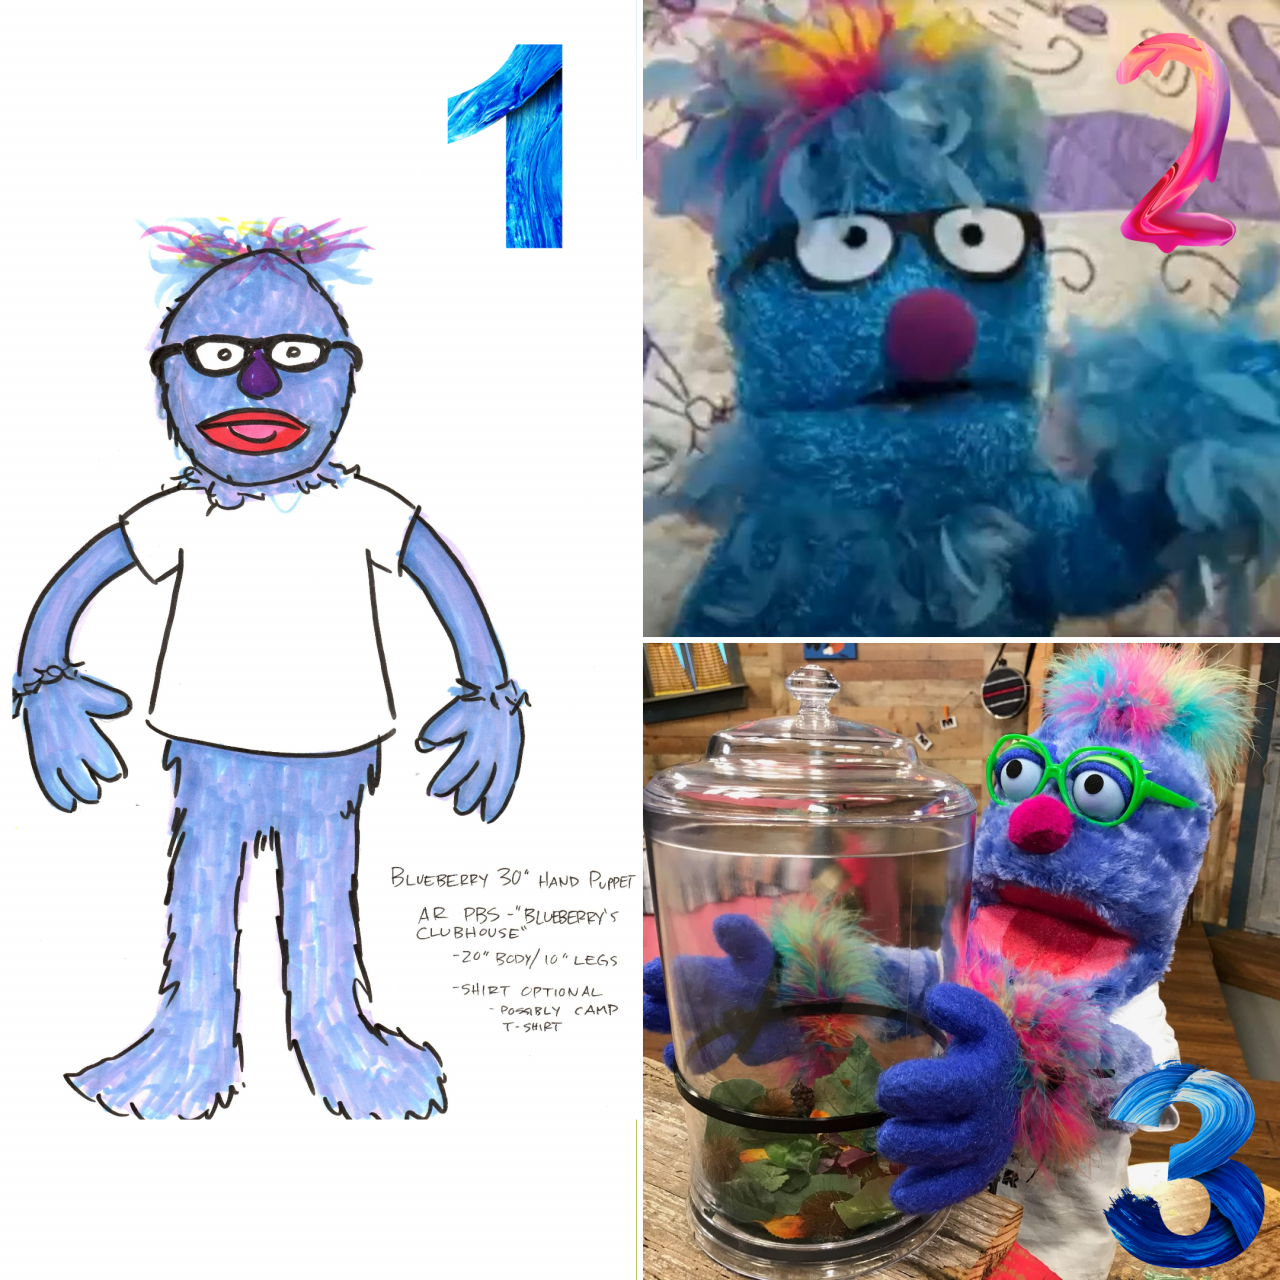 Stages One-Three of Blueberry's design